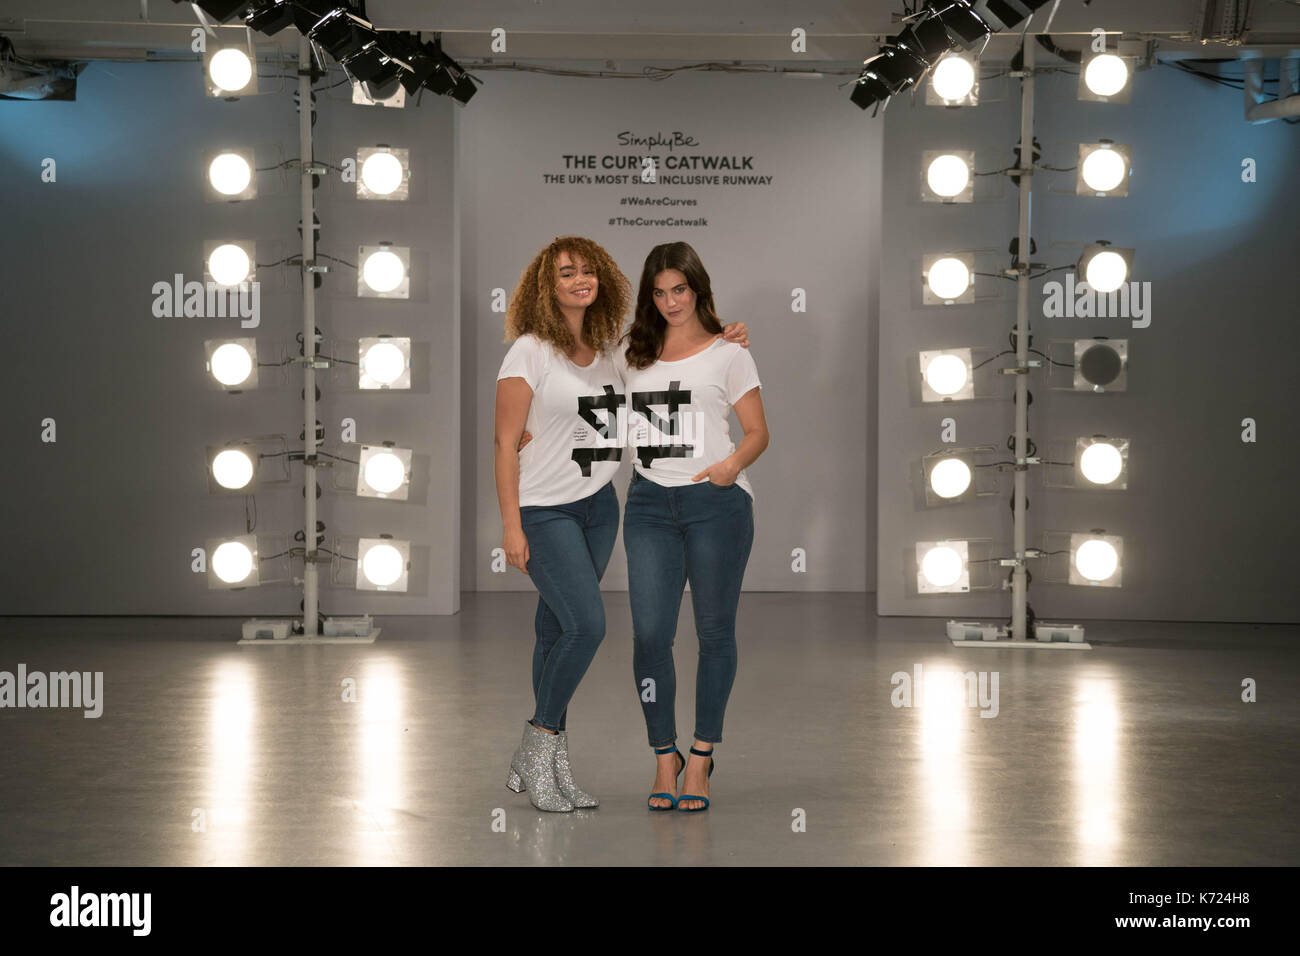 London, UK. 14th Sep, 2017. Models Sonny (left) and Ali Tate wearing tee shirts with their sizes on at a photo call for the Curve Catwalk, a fashion show celebrating diversity of body shapes and forms, at The Vinyl Factory as part of London Fashion Week in London. Photo date: Thursday, September 14, 2017. Photo credit should read Credit: Roger Garfield/Alamy Live News - Stock Image